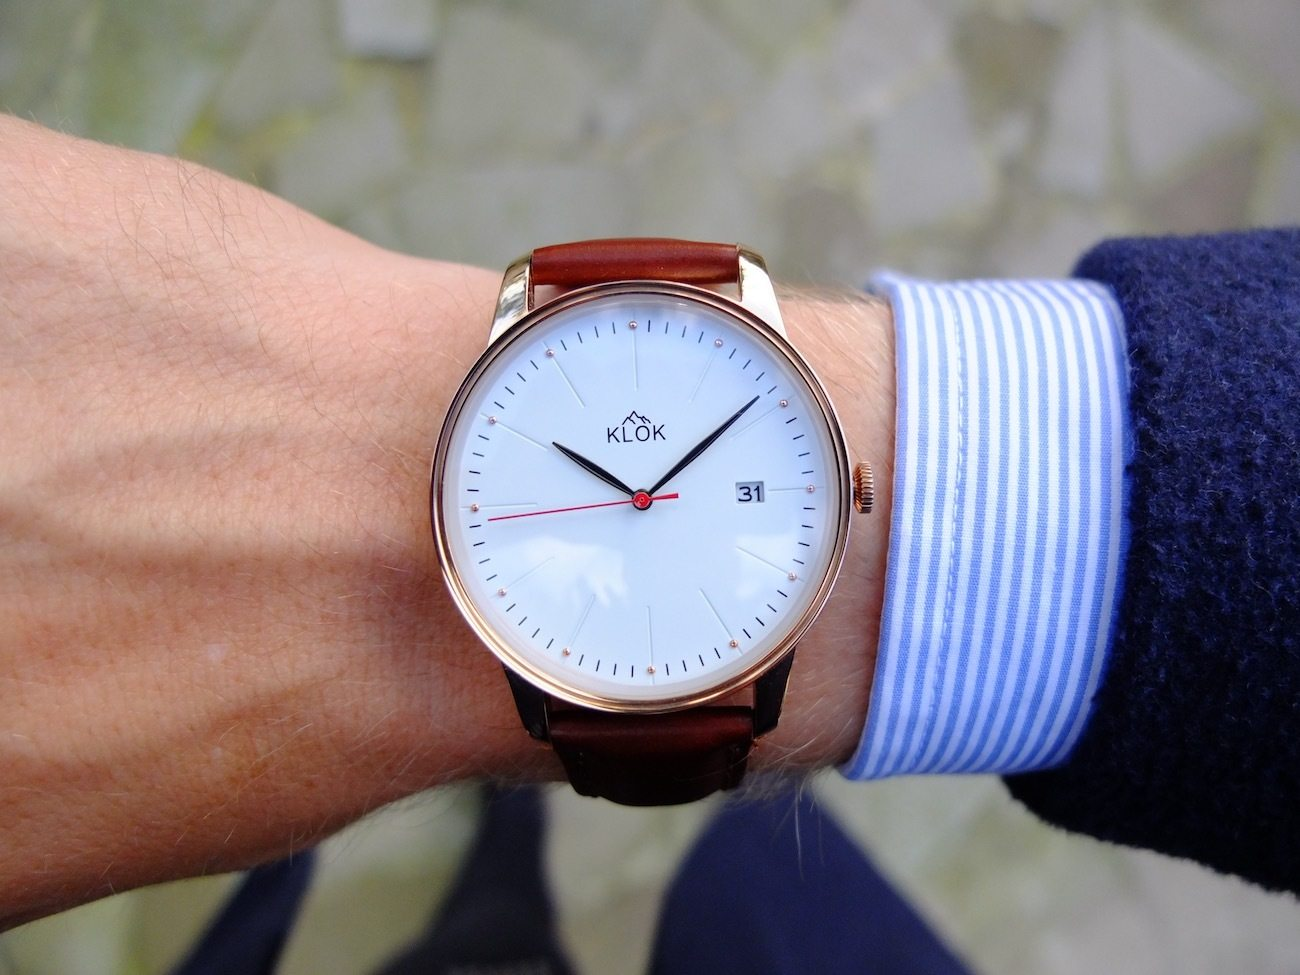 KLOK High-Quality Contemporary Watches